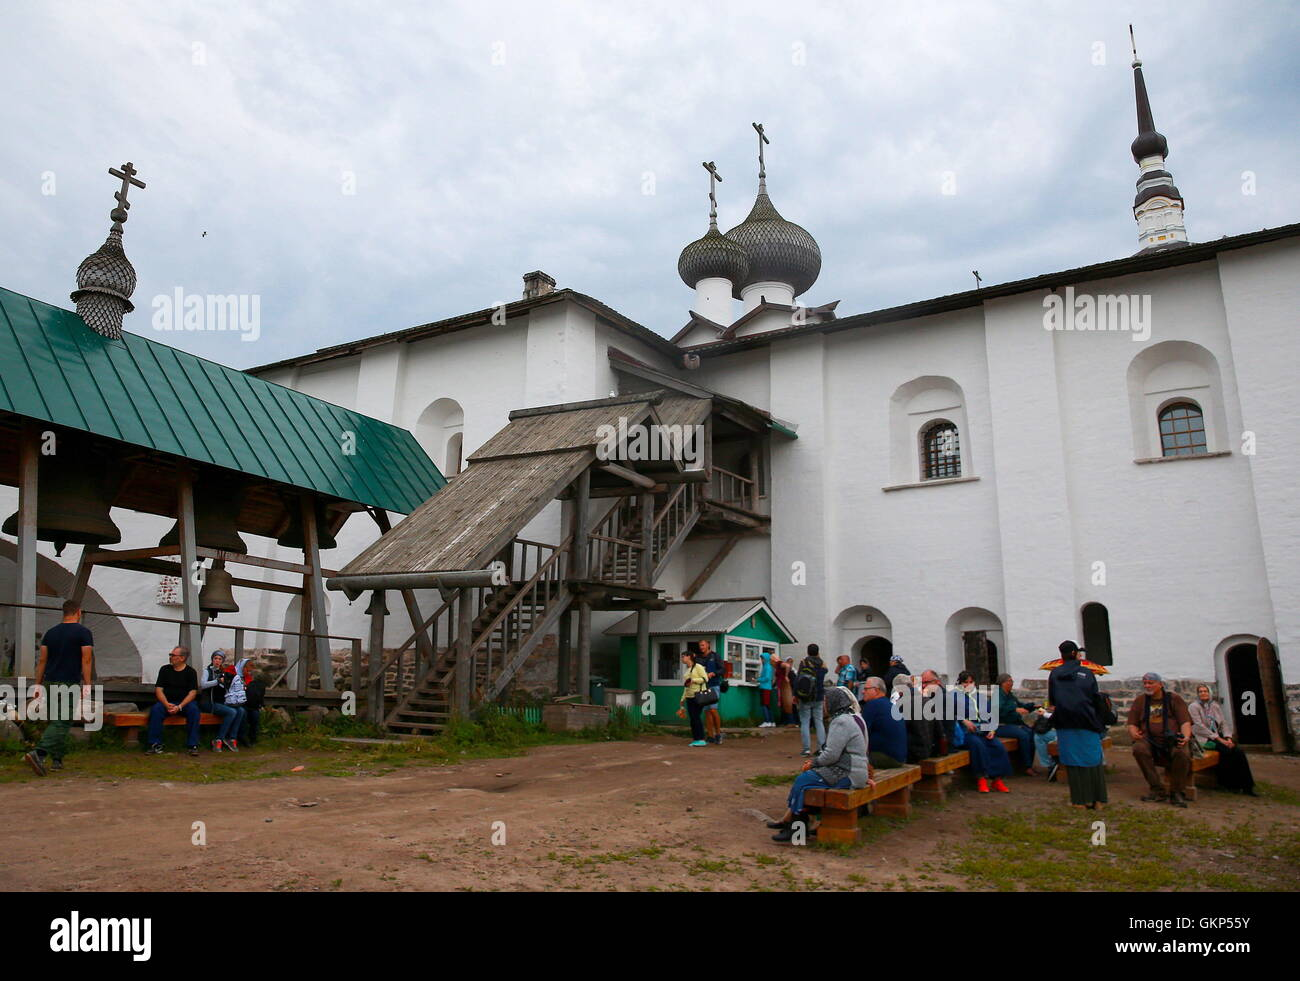 Arkhangelsk Region, Russia. 20th Aug, 2016. The Solovetsky Monastery on the Solovetsky Archipelago. © Sergei Fadeichev/TASS/Alamy Stock Photo